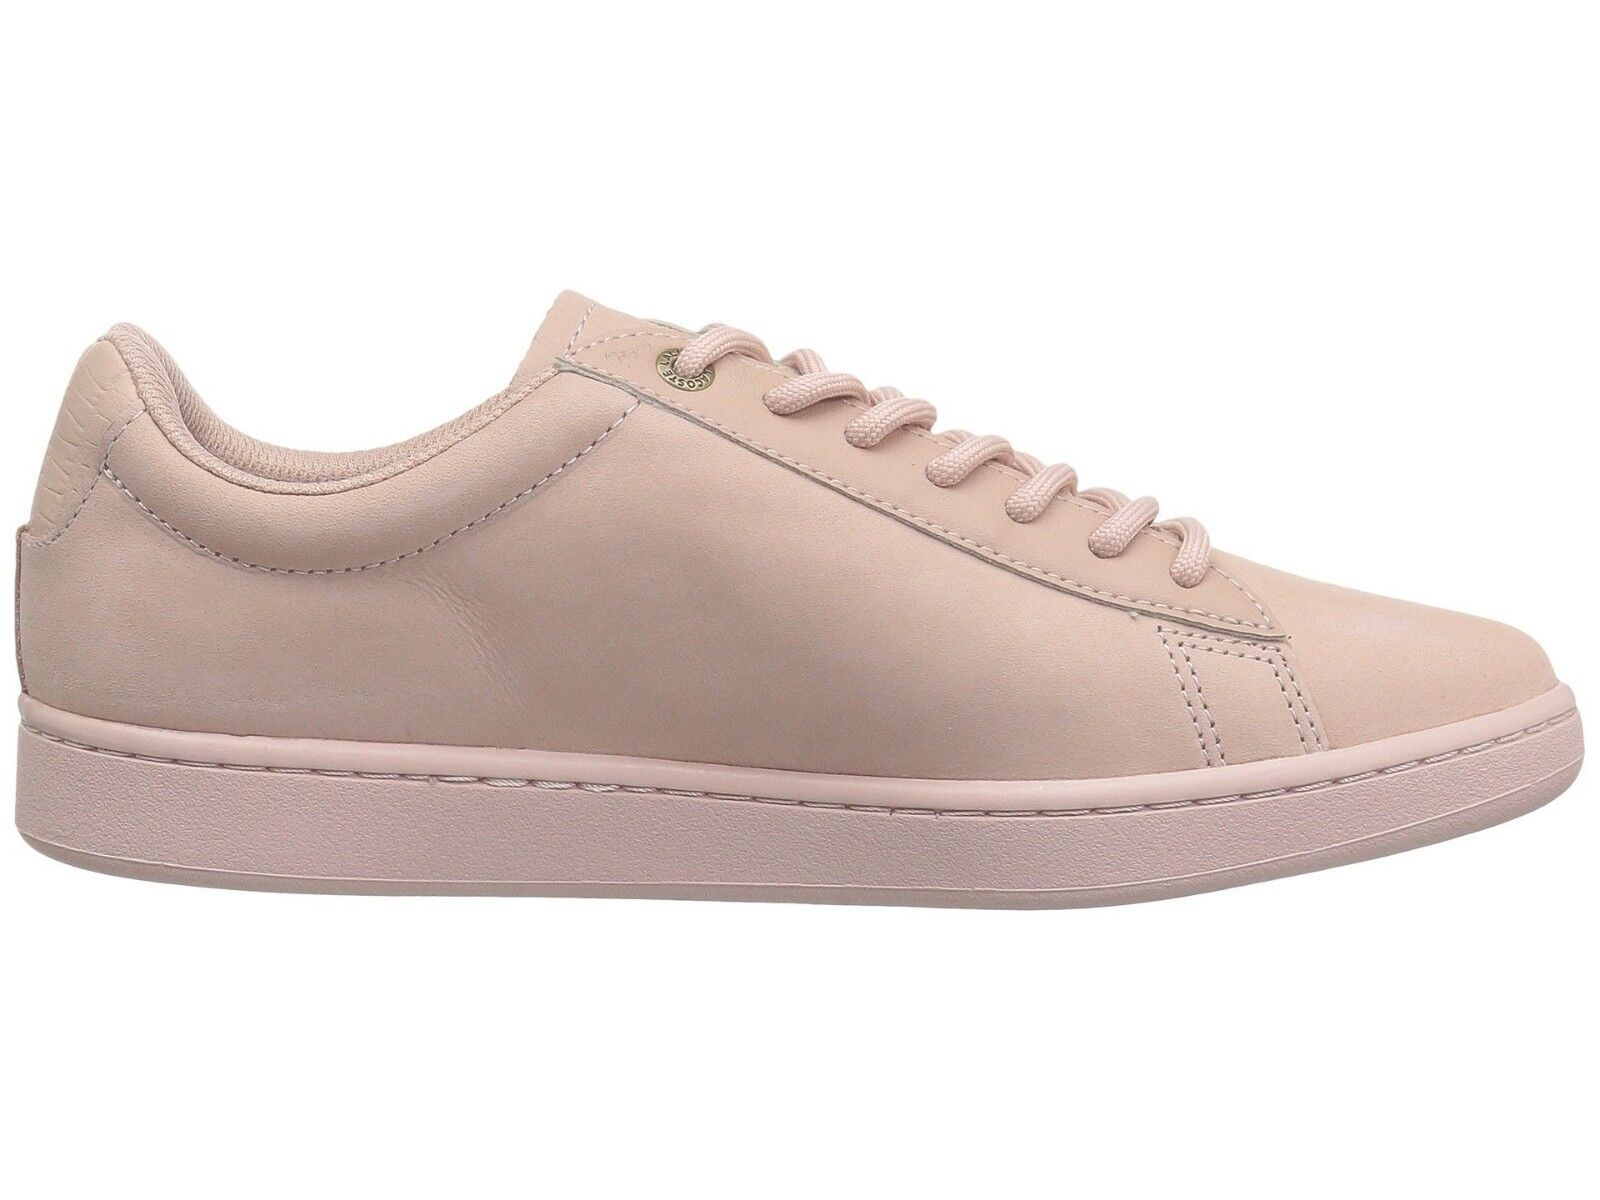 Lacoste Carnaby Evo Men's Casual Croc Logo Pink Leather  Loafer Shoes Sneakers  1